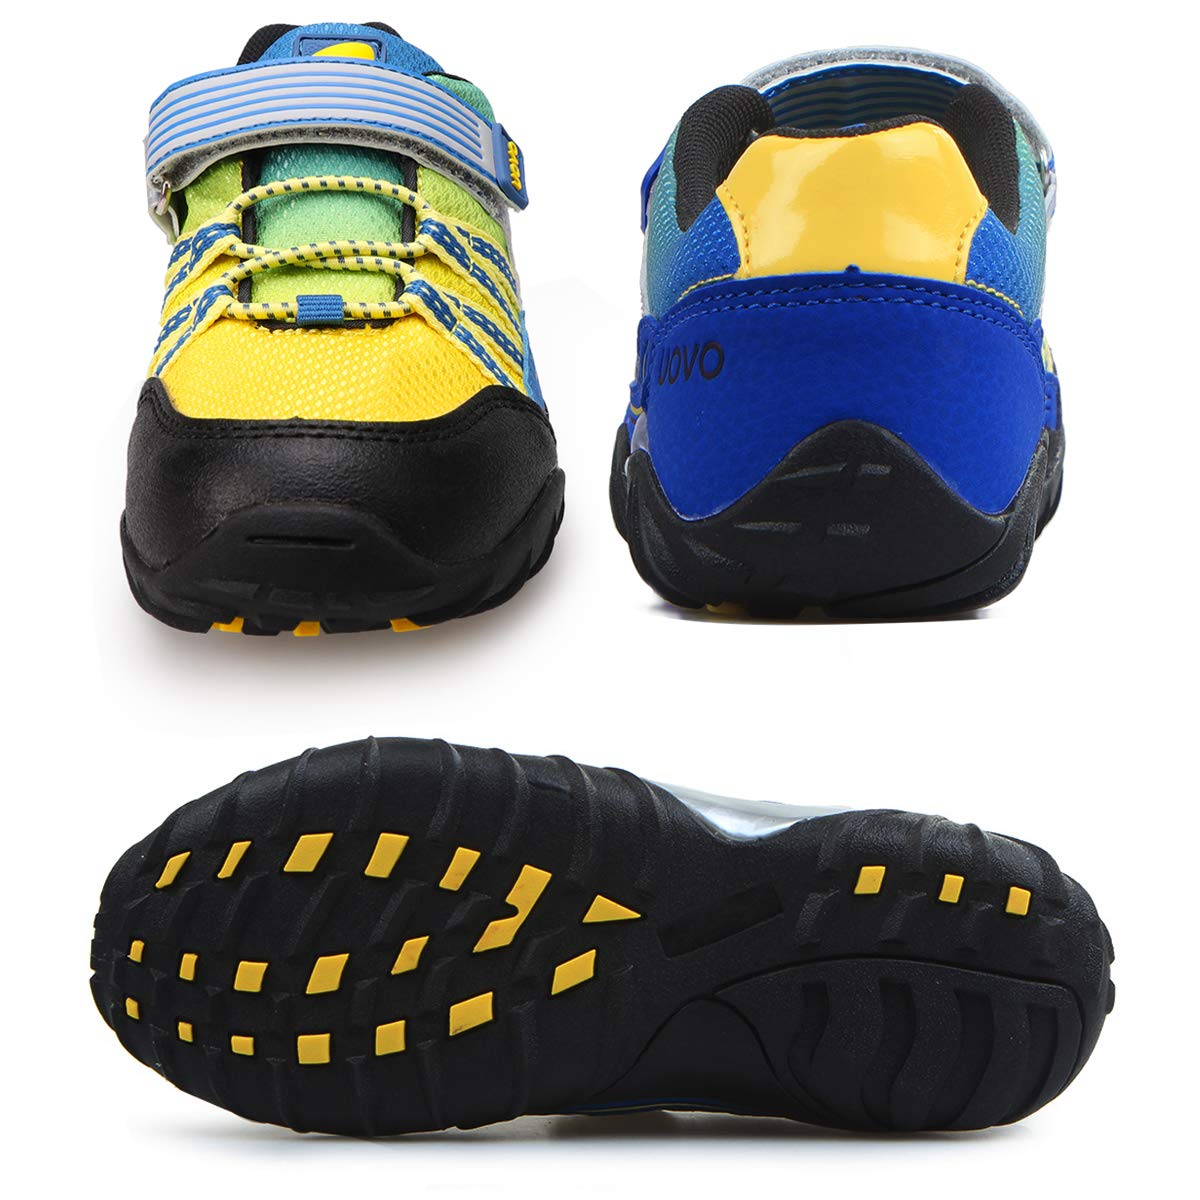 UOVO Little Boys Shoes Running Sneakers Kids Hiking Athletic Tennis Shoes for Toddler Boys Blue by UOVO (Image #6)